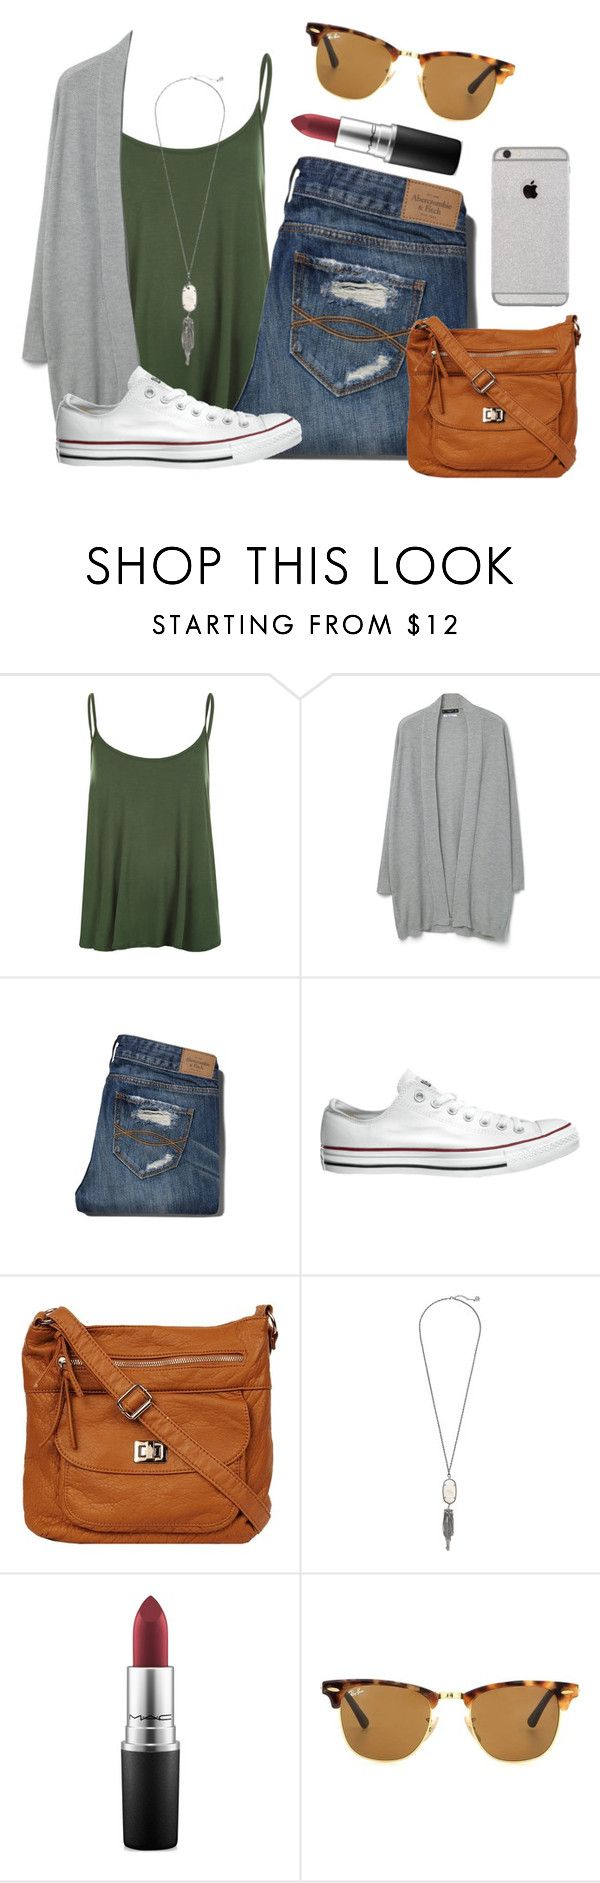 """""""Love is all we need ❣"""" by kari-luvs-u-2 ❤ liked on Polyvore featuring WearAll, MANGO, Abercrombie & Fitch, Converse, Kendra Scott, MAC Cosmetics and Ray-Ban"""